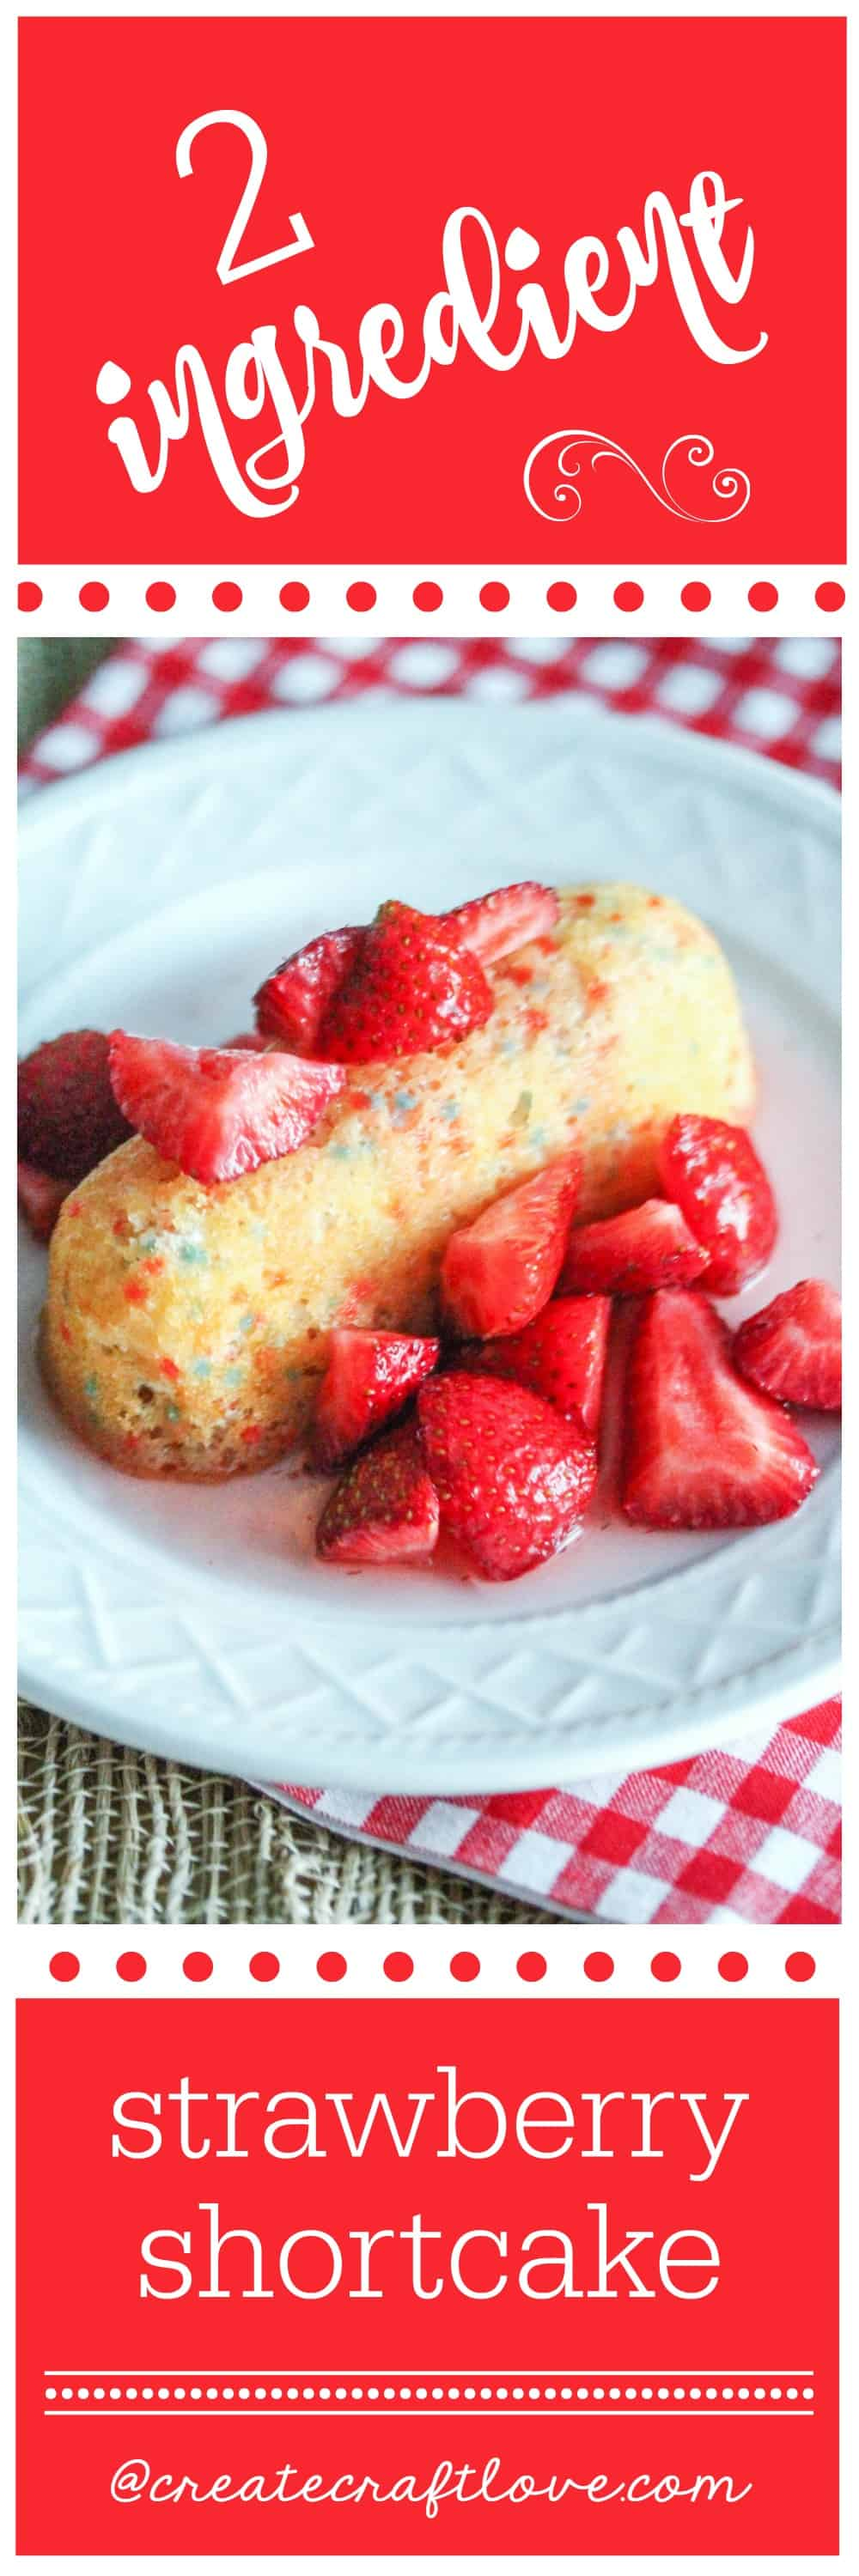 Strawberry Shortcake Shortcut - the secret to perfect dessert every time!